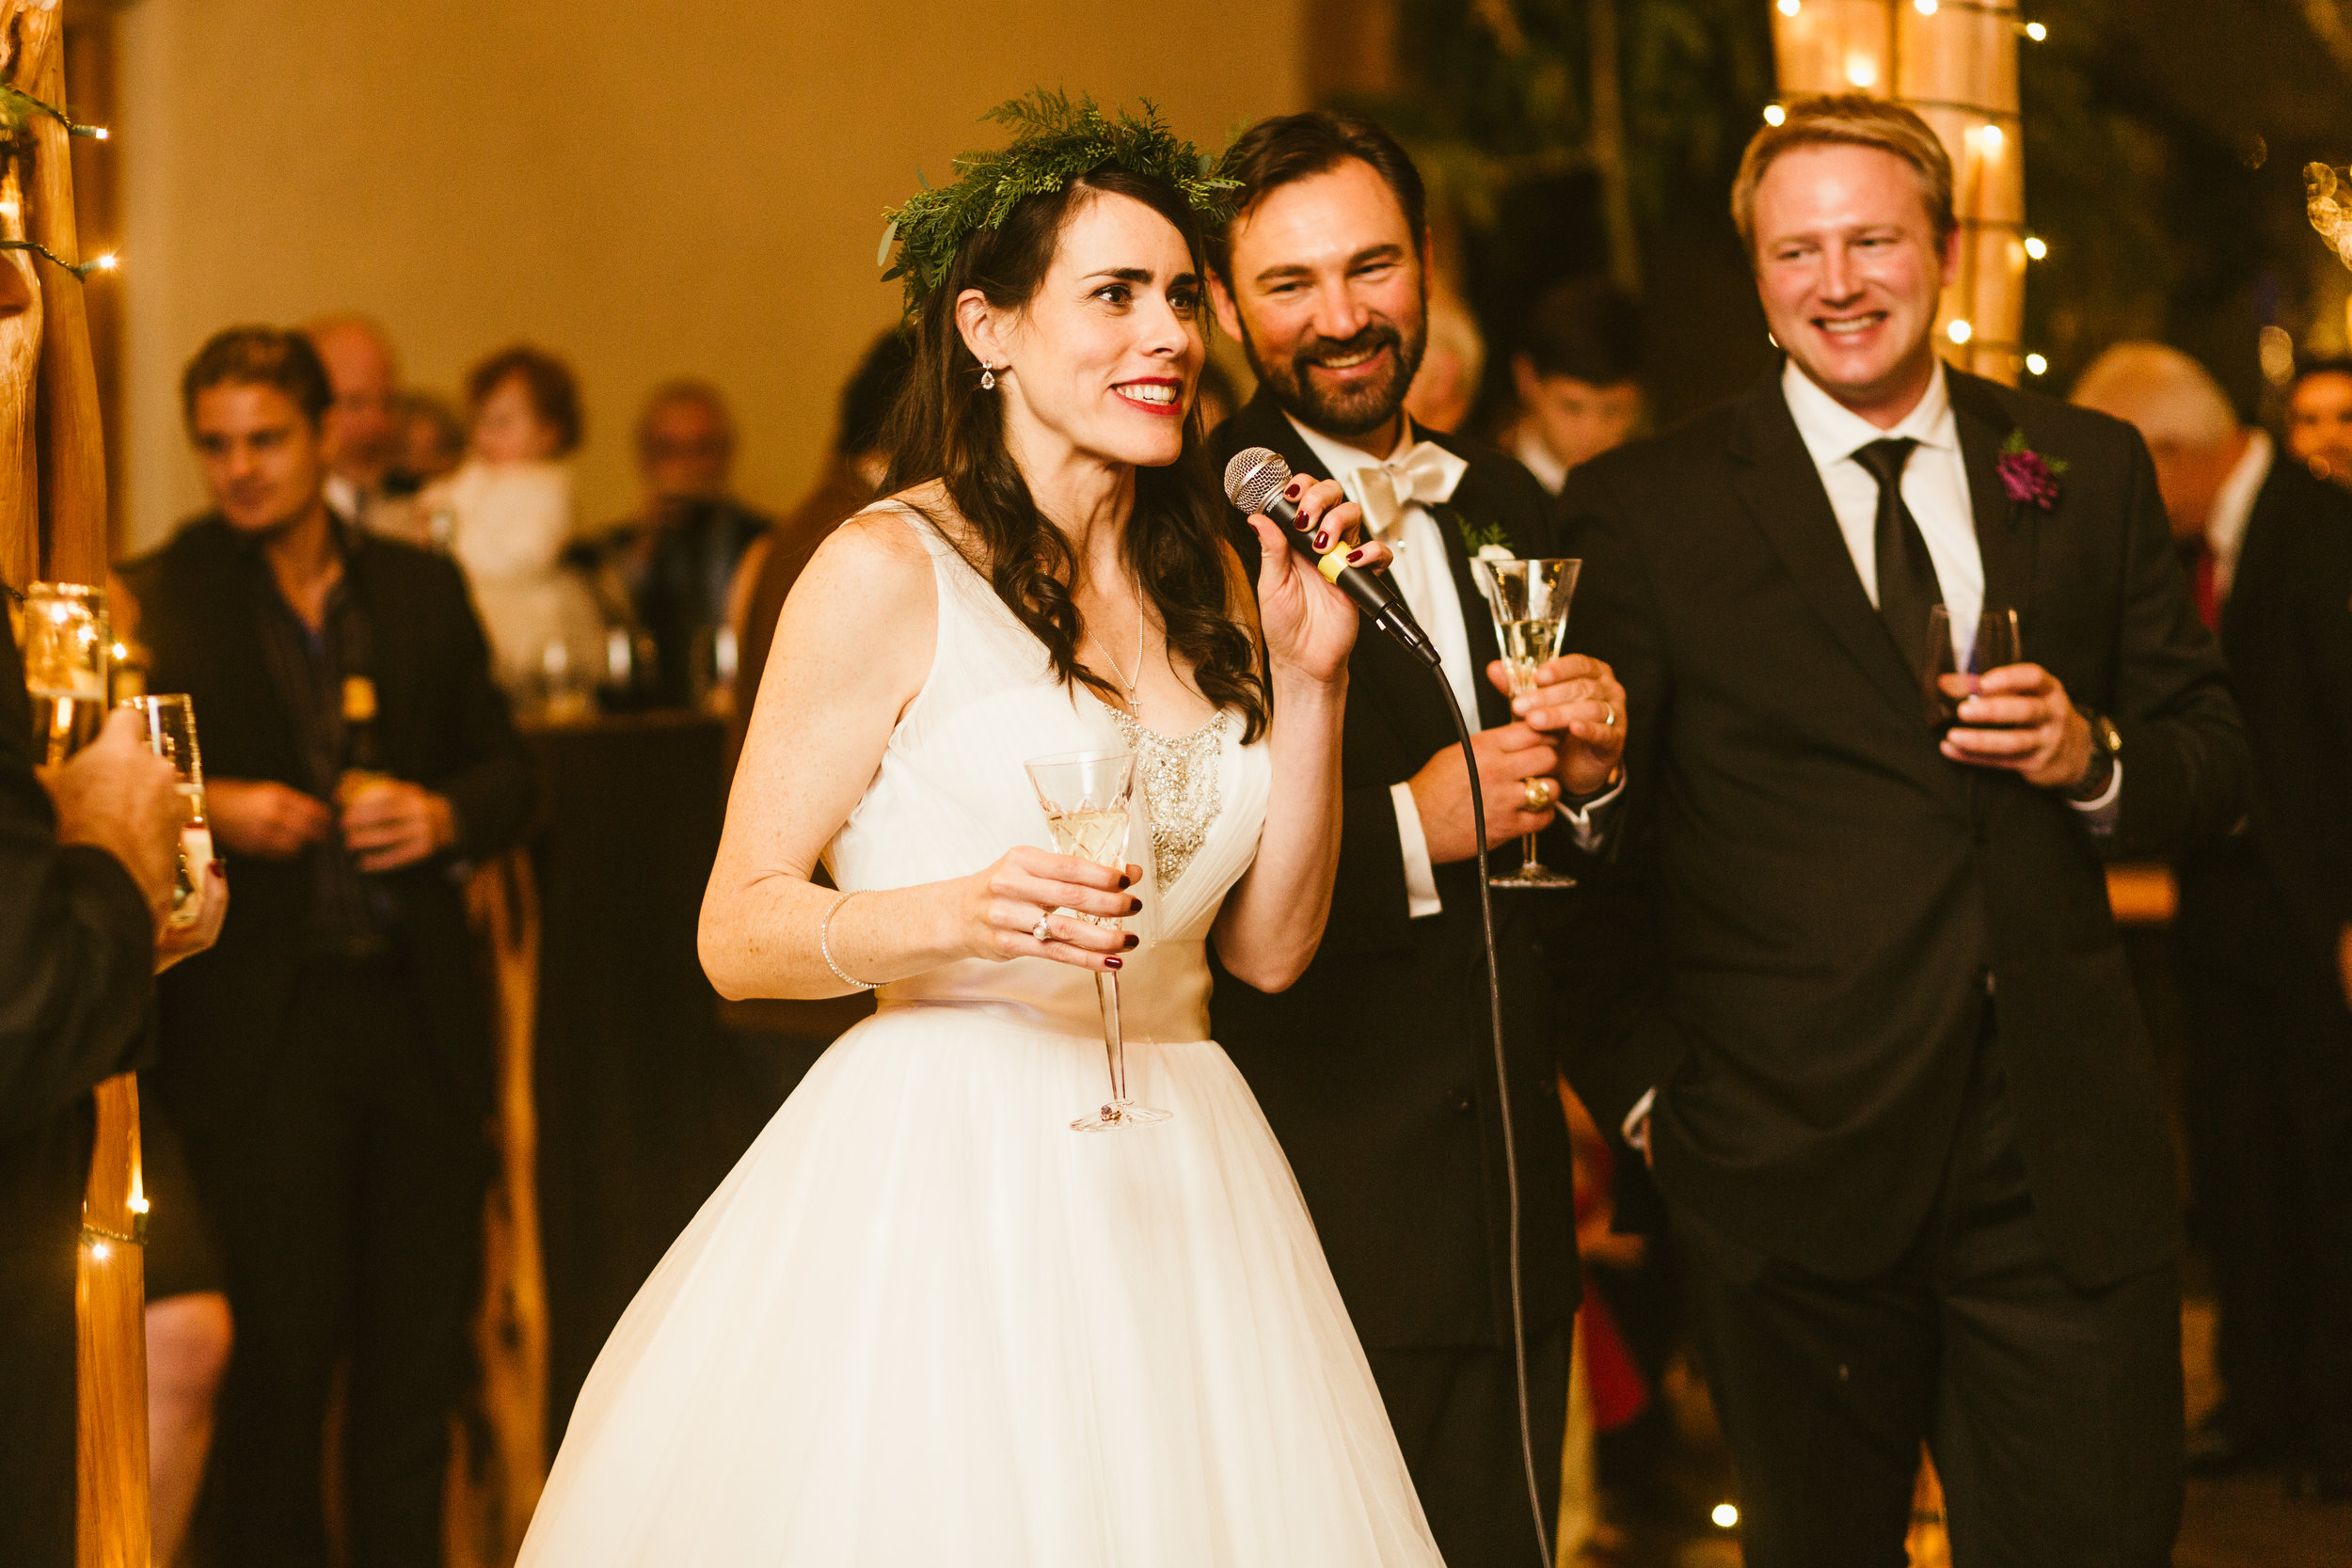 Who says brides can't toast at their own wedding?